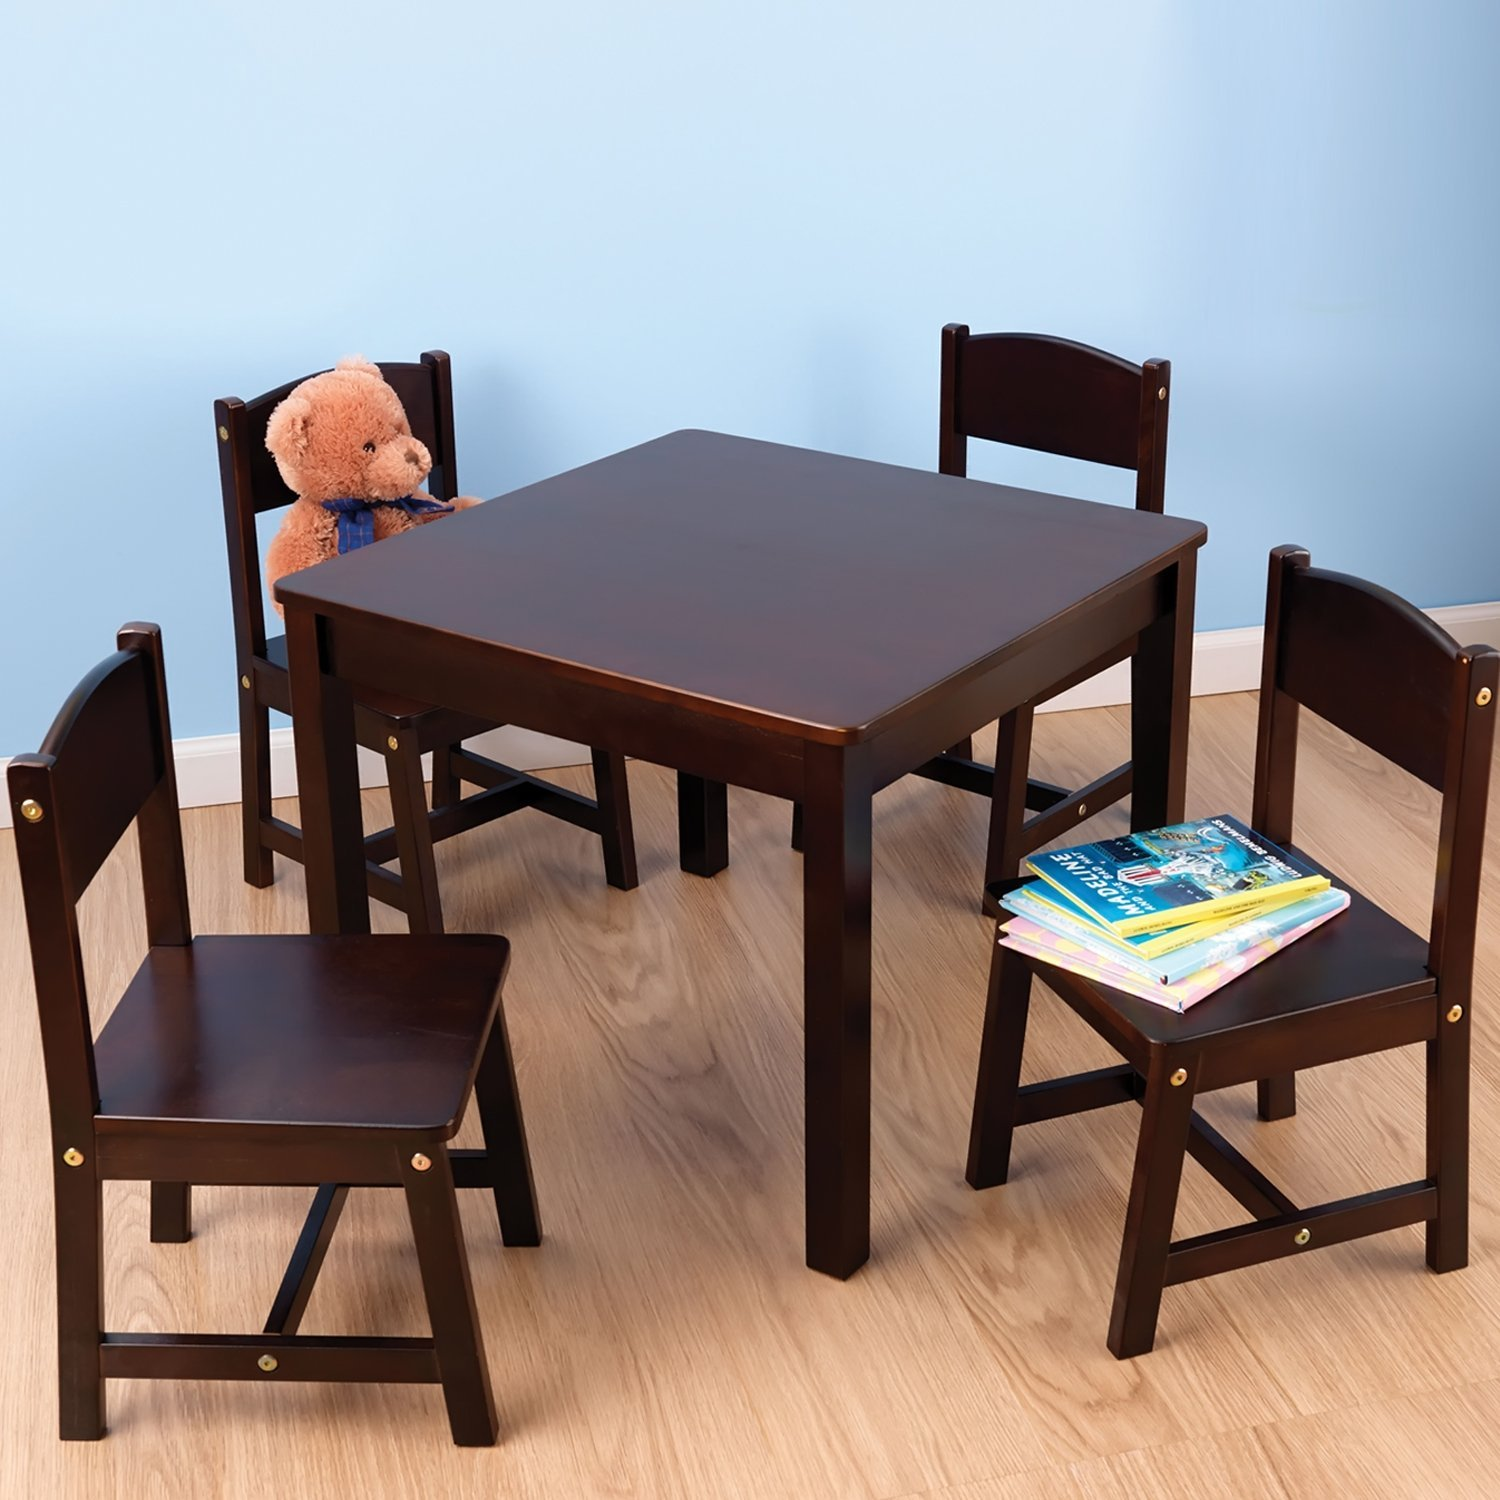 KidKraft Farmhouse Table & 4 Chairs Set